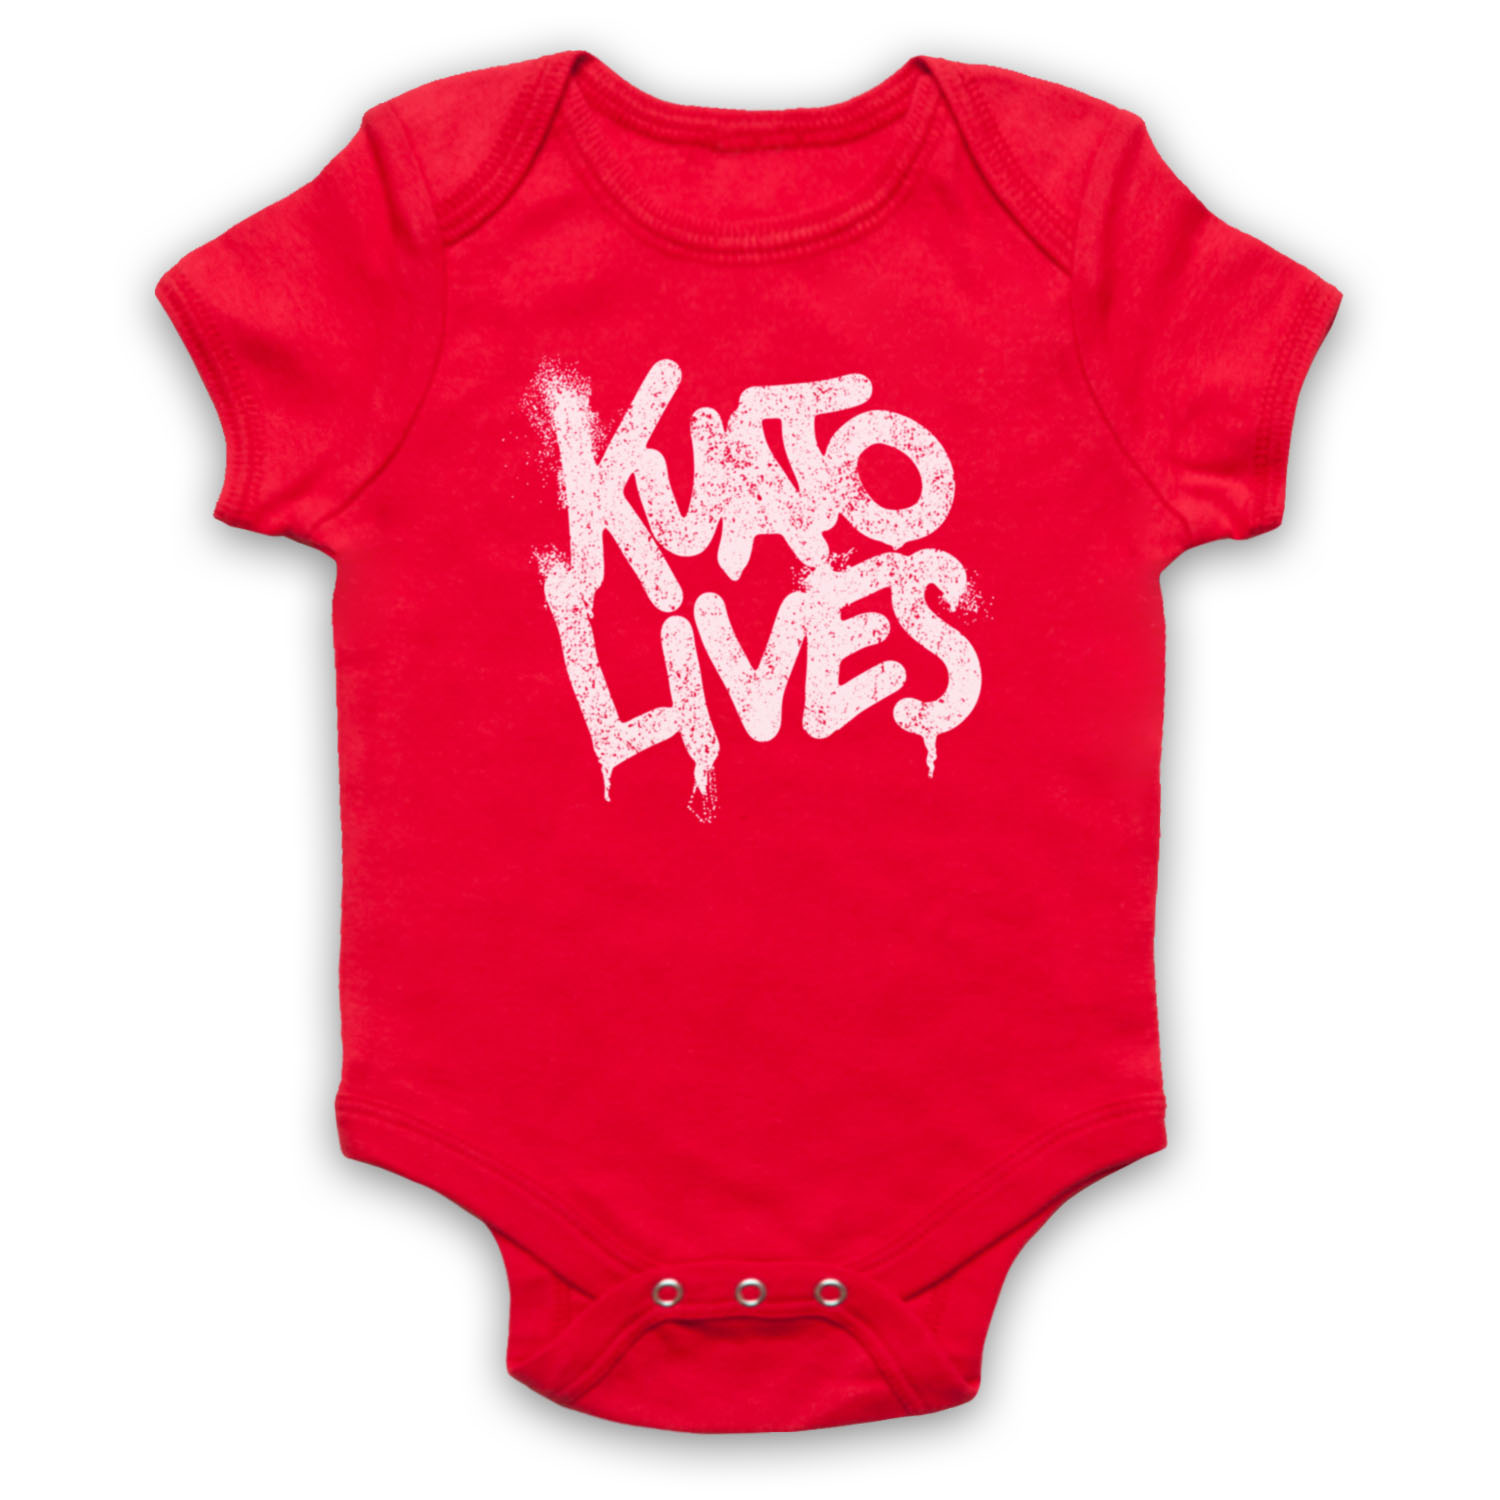 KUATO-LIVES-TOTAL-RECALL-UNOFFICIAL-ARNIE-90s-SCI-FI-BABY-GROW-BABYGROW-GIFT